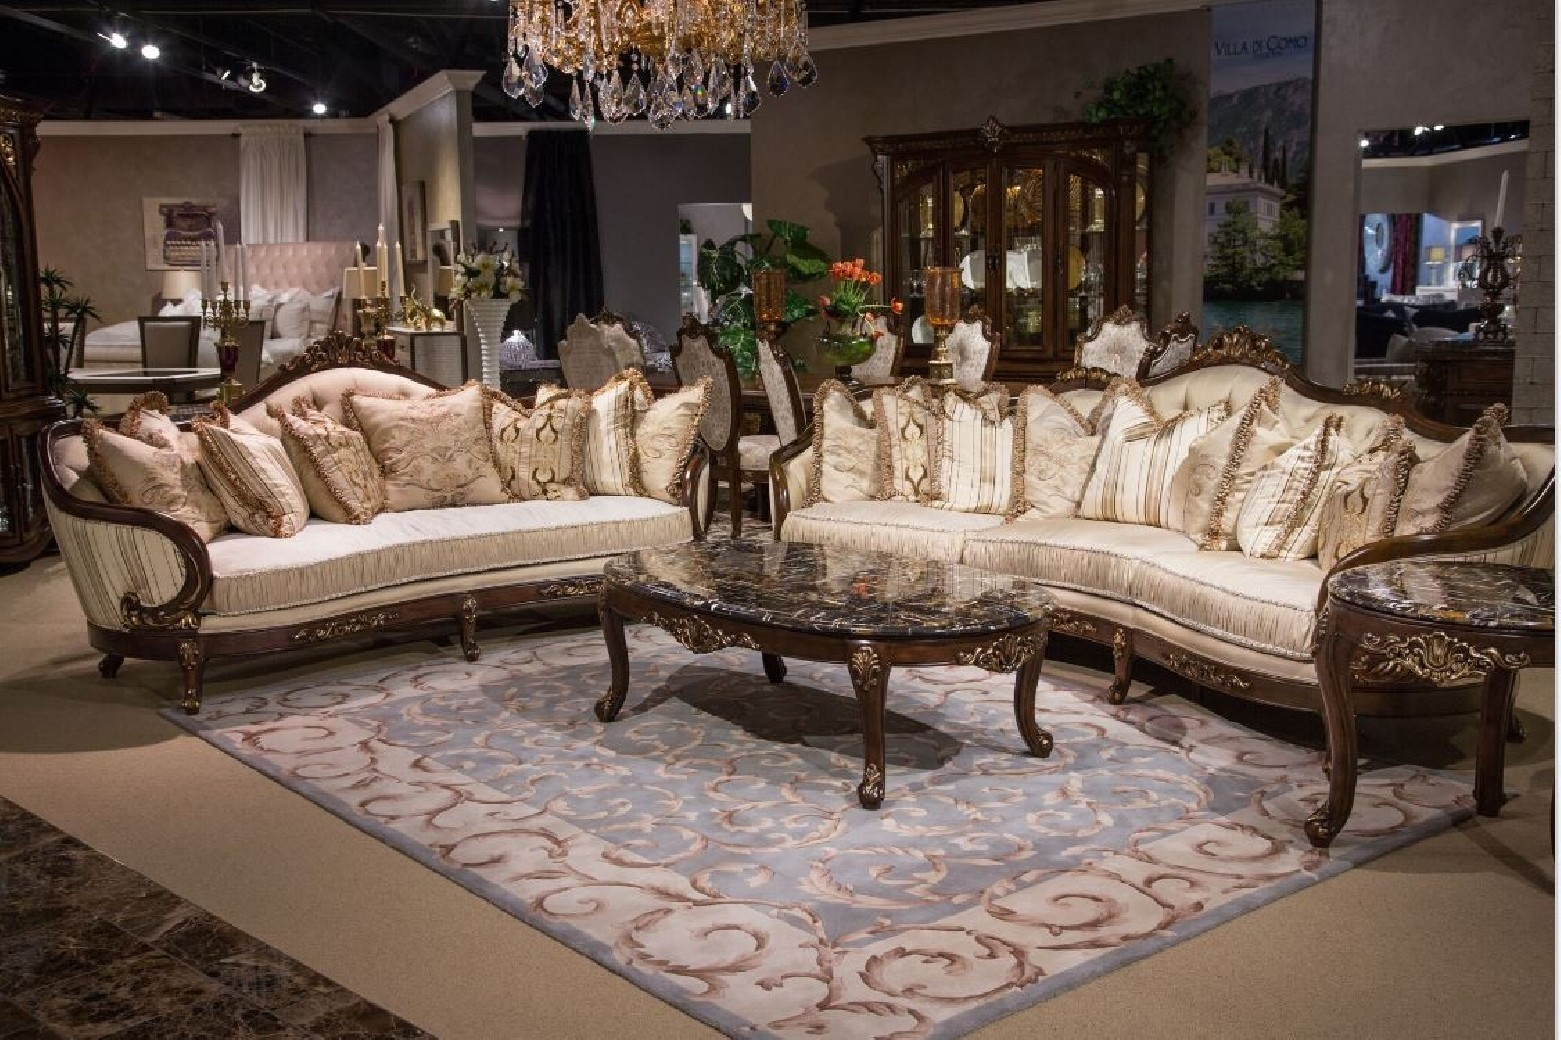 Aico Villa Di Como Living Room Collection Michael Amini throughout 14 Smart Ways How to Craft Aico Living Room Sets